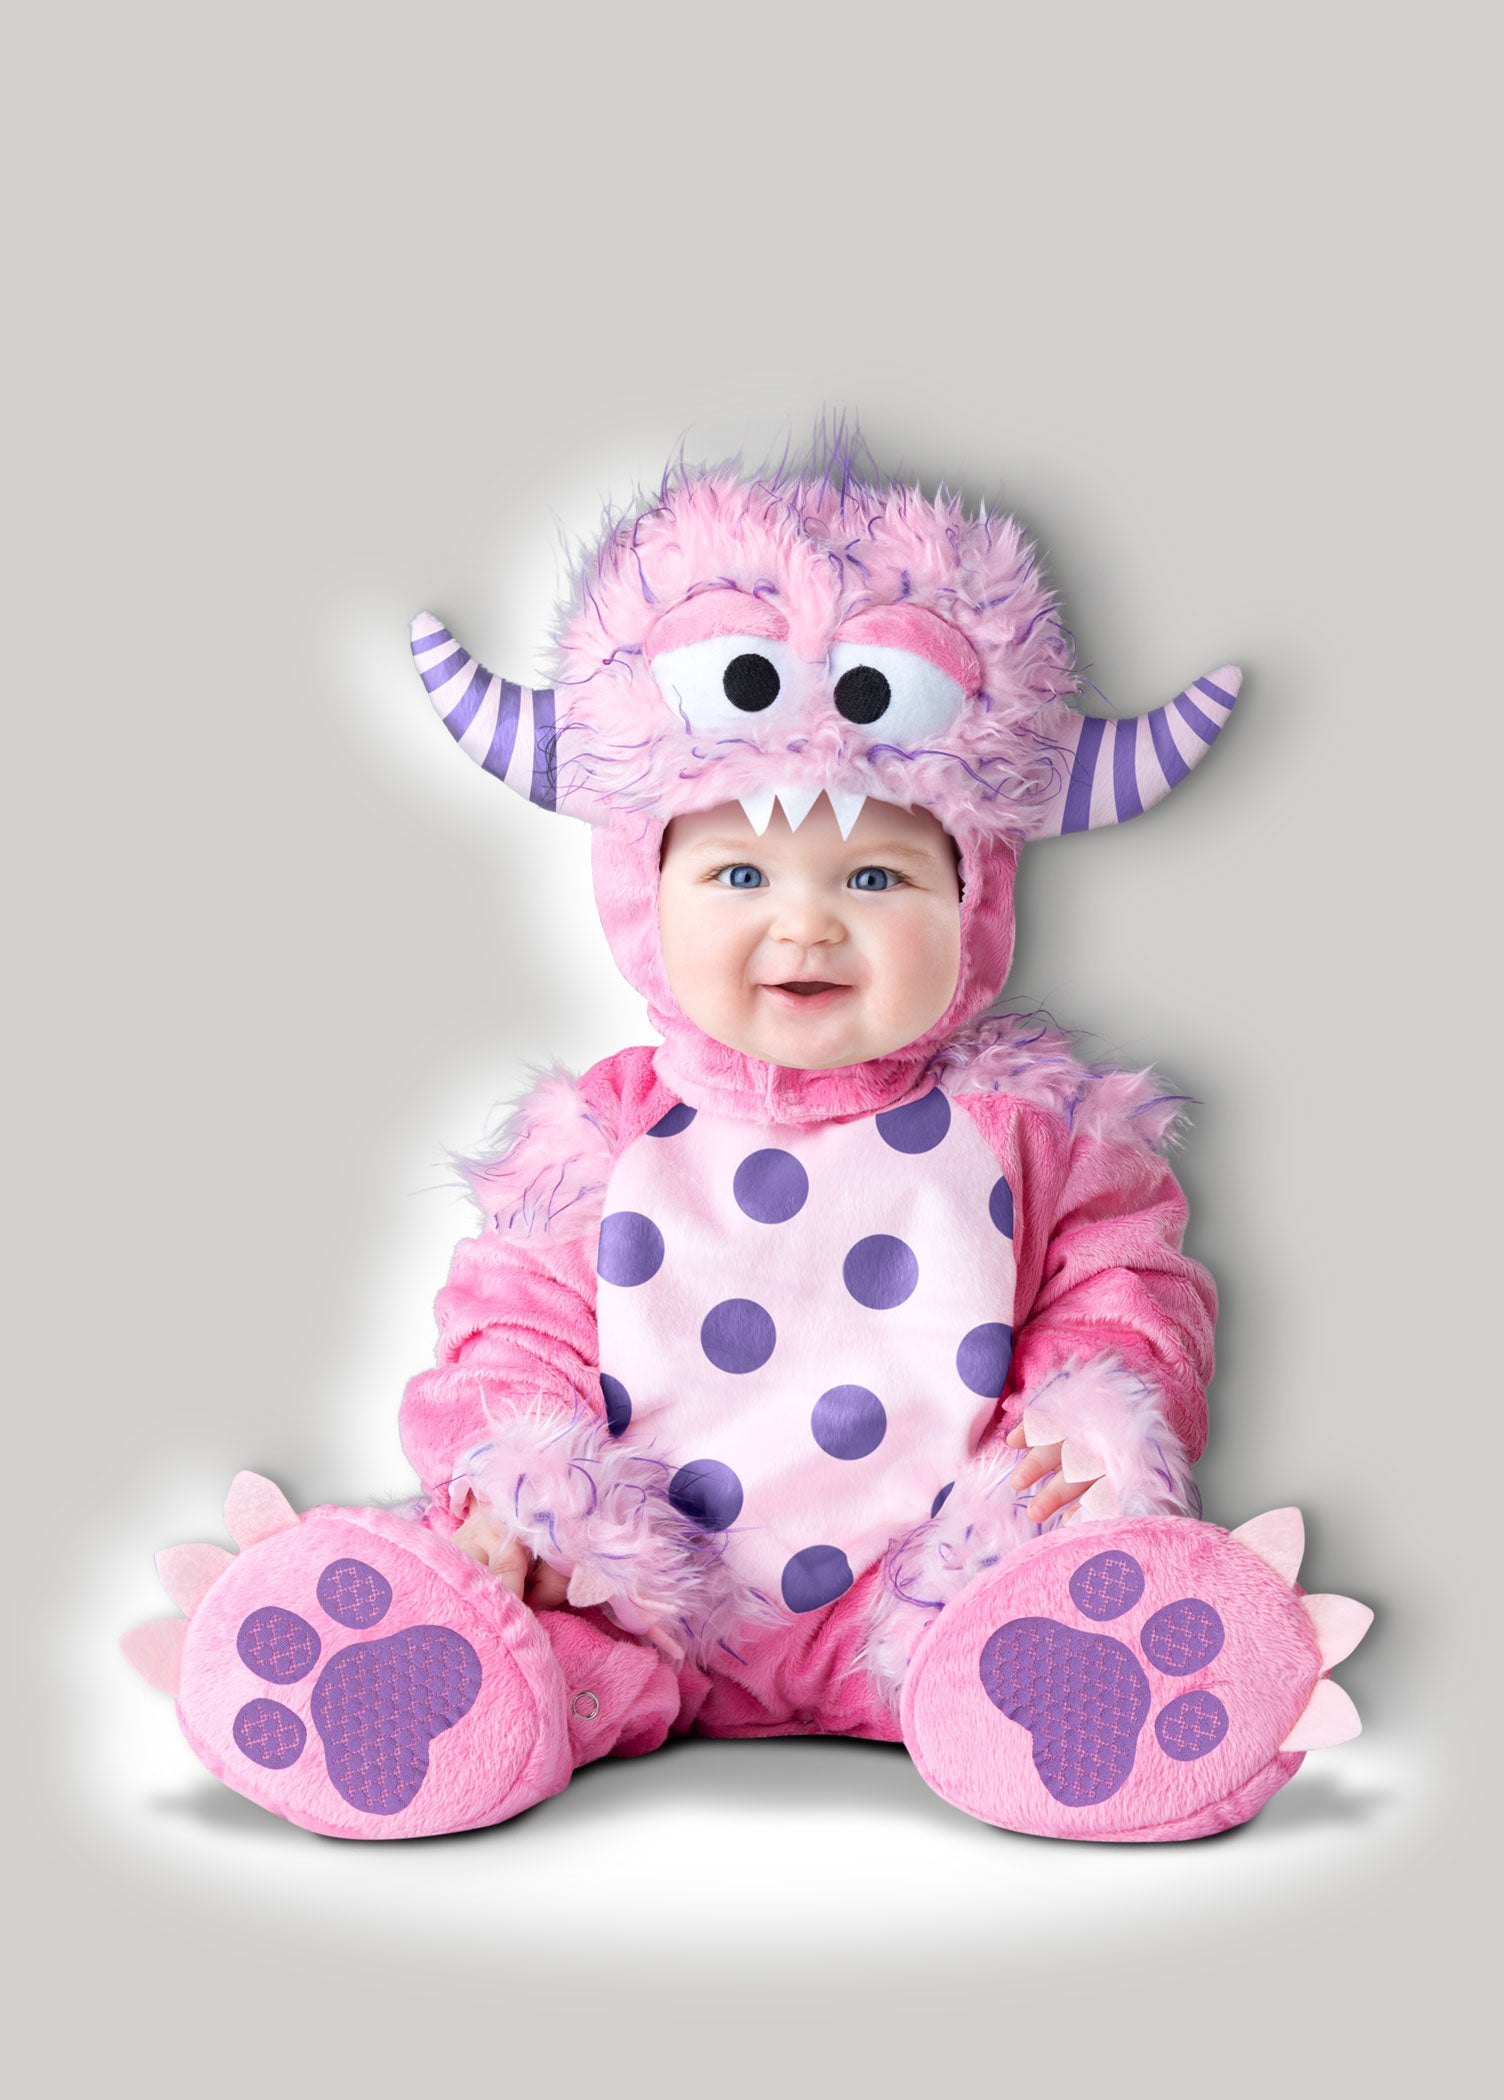 Pink Monster Cute Baby Costume Incharacter Costumes